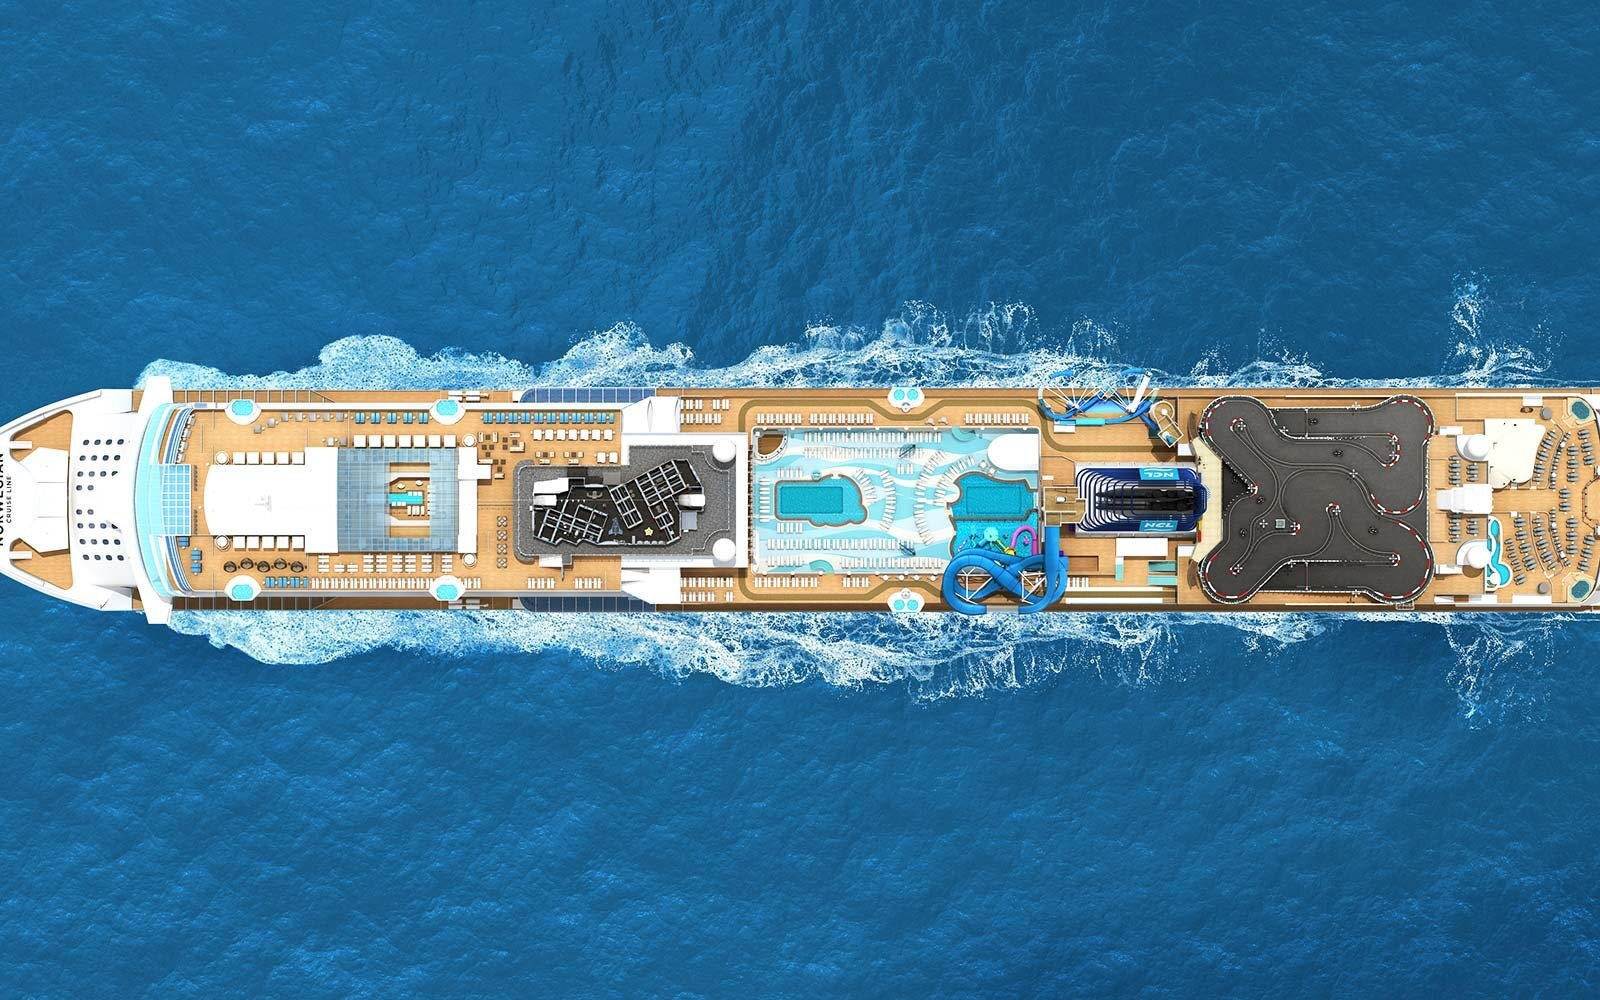 This New Cruise Ship Is Bringing a Go-kart Track, Luxe Spa